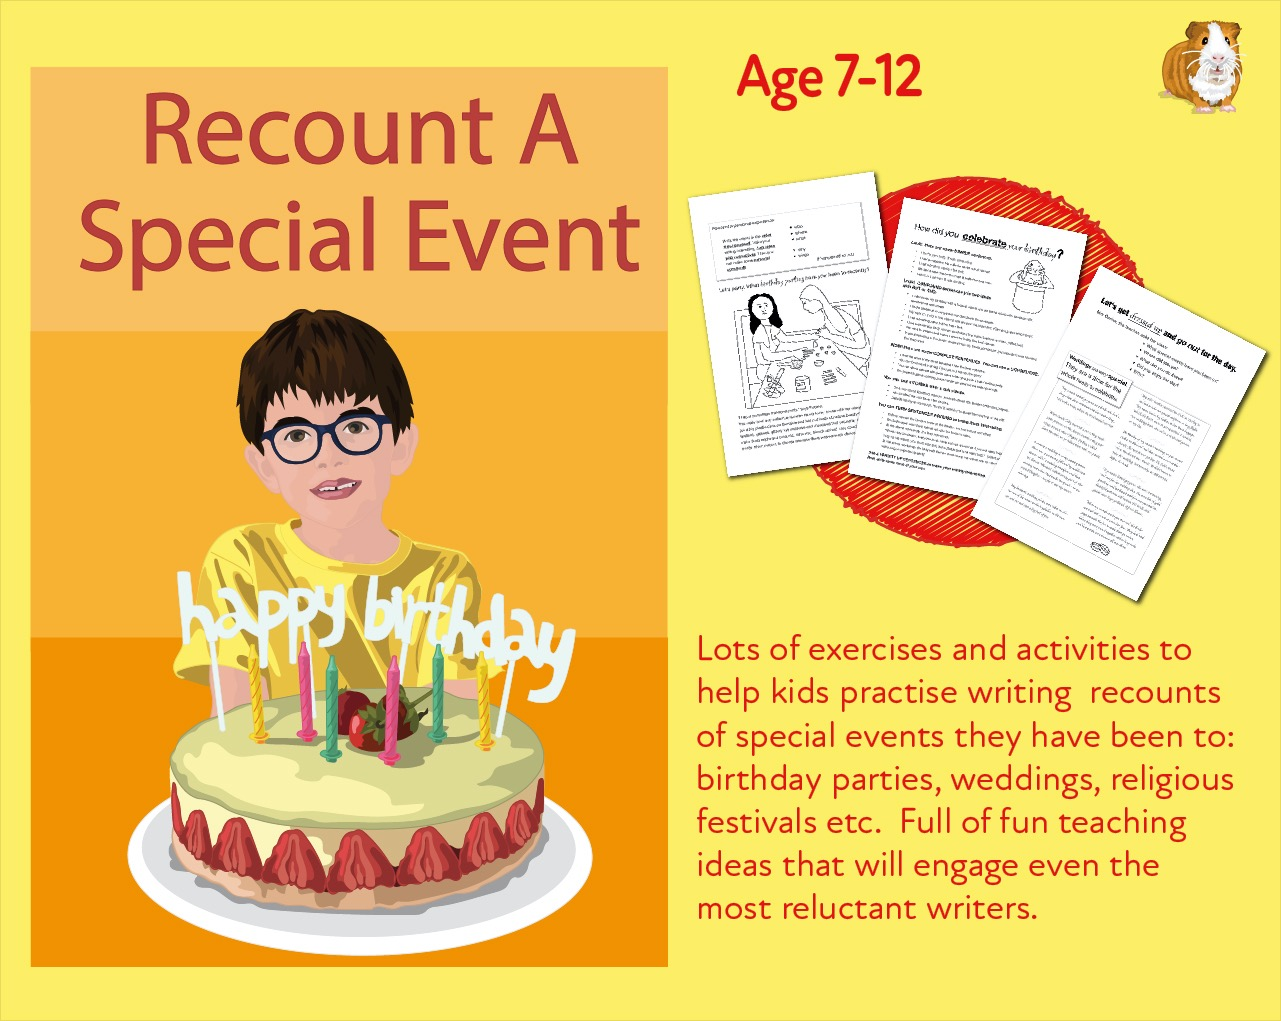 Recount A Personal Experience And Recount A Special Event (7-11 years)